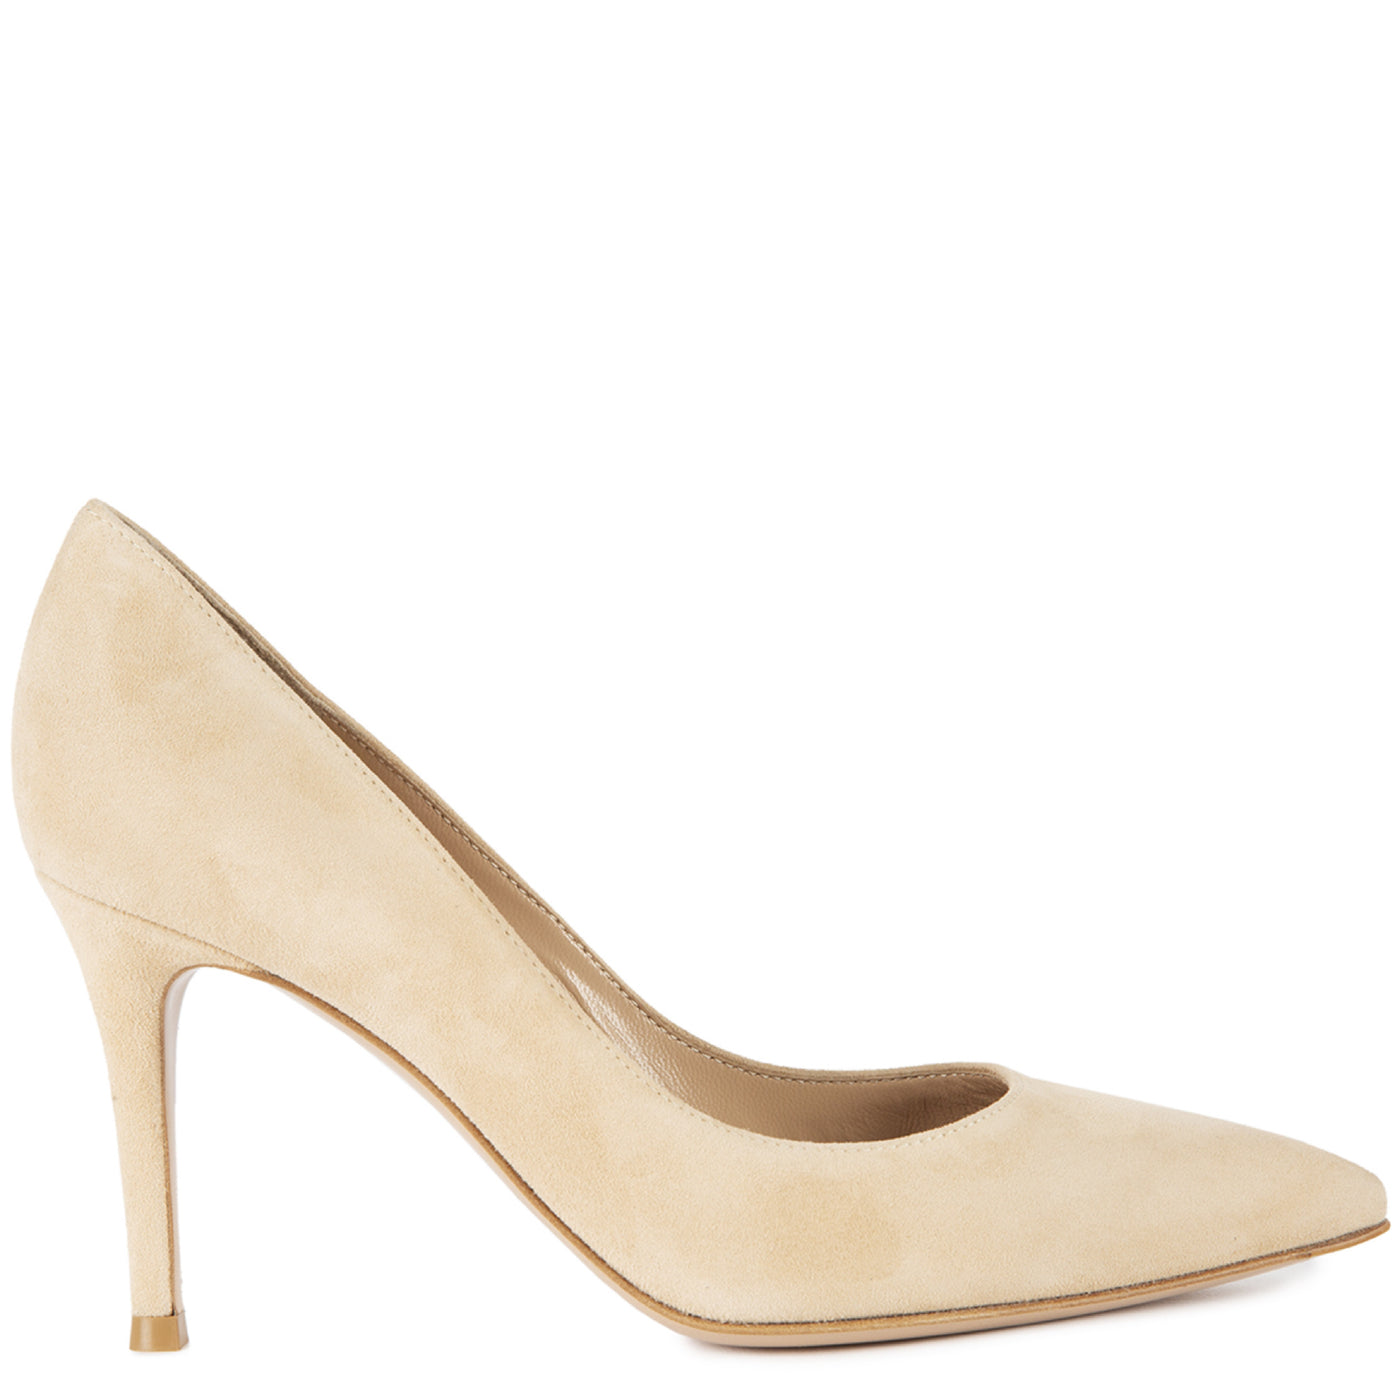 Load image into Gallery viewer, GIANVITO ROSSI SUEDE PUMP NEUTRAL